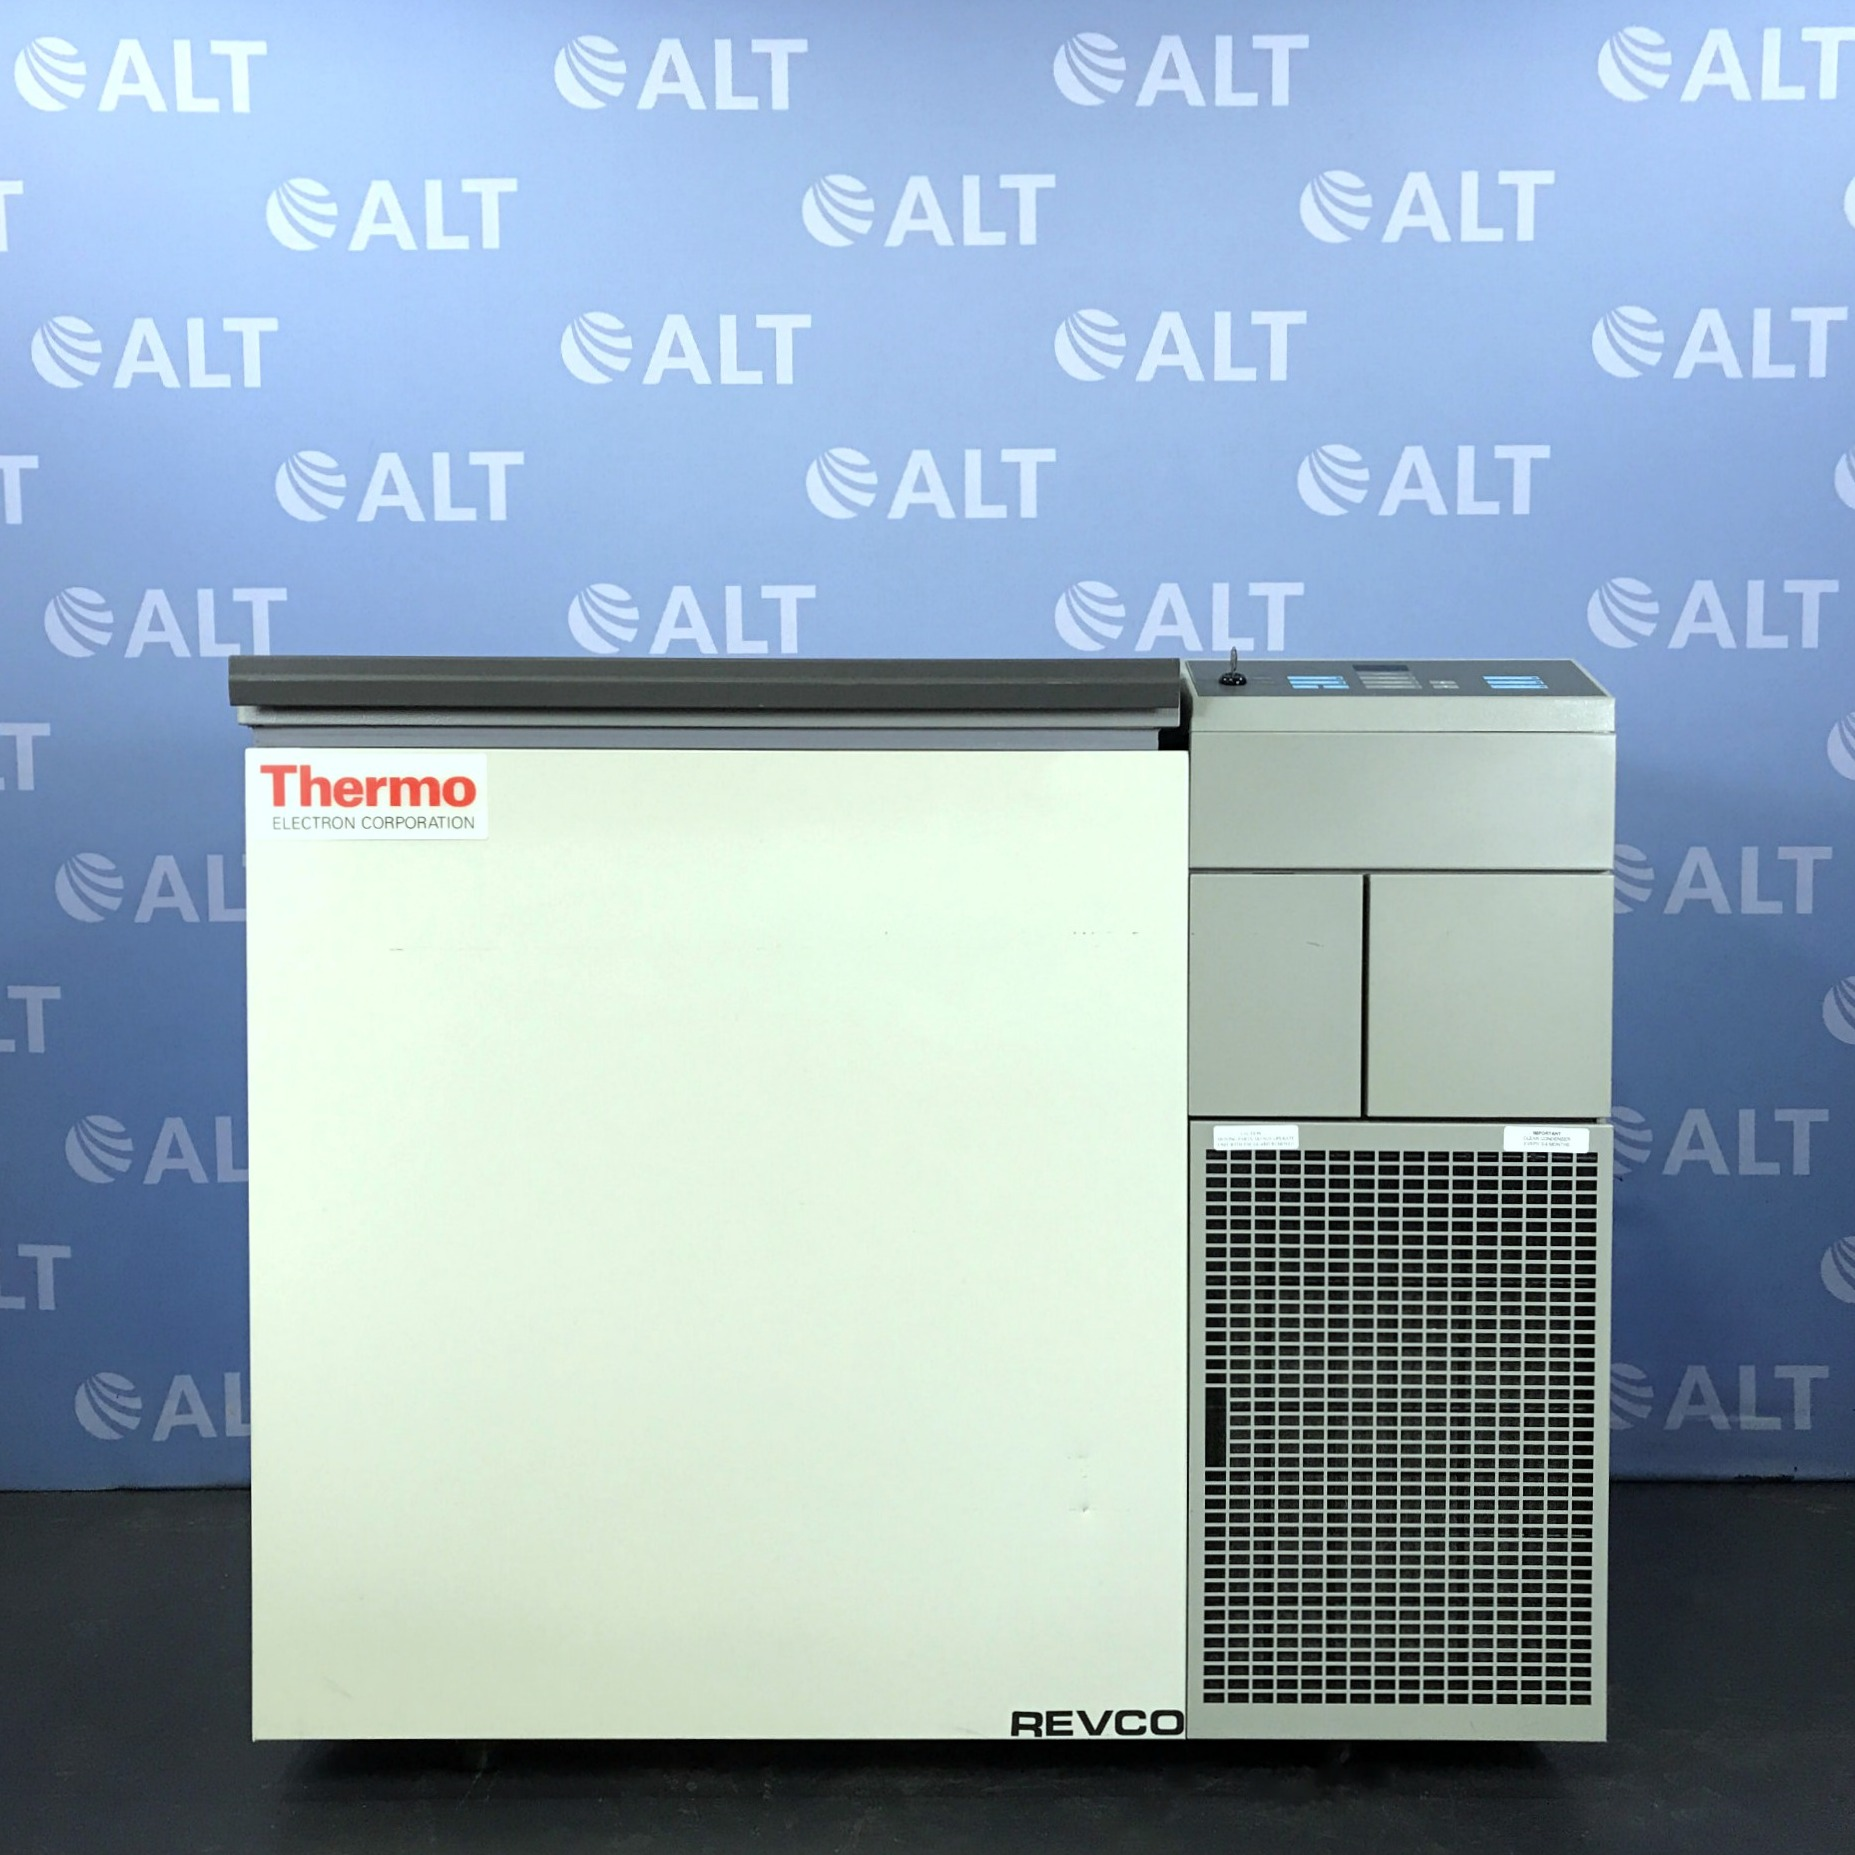 Thermo Electron Corporation ULT750-5-A32 -40°C Elite Chest Freezer Image